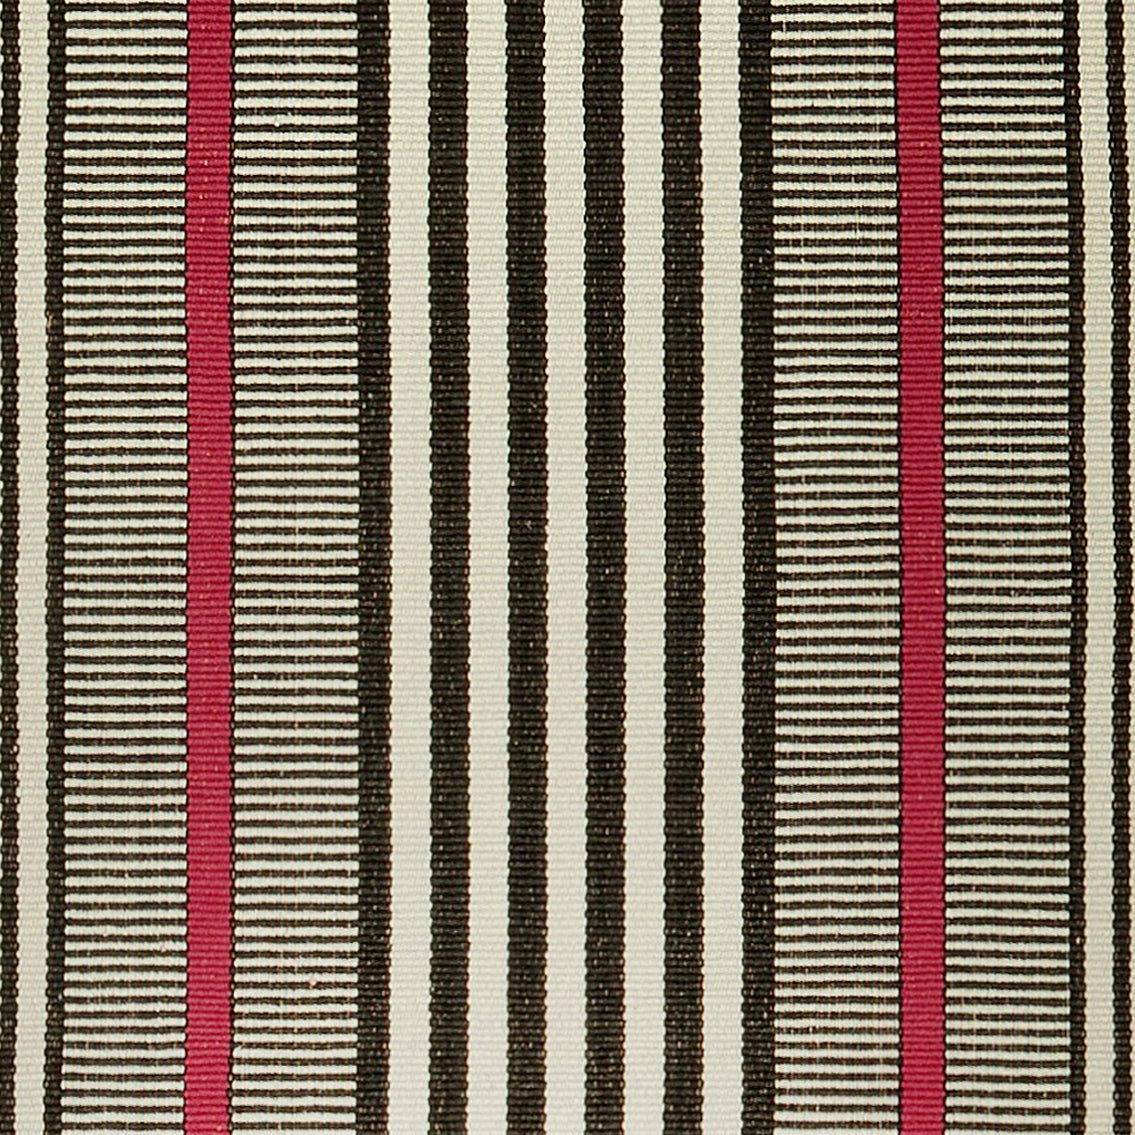 A bold design that is stunning on stairs or as a hall runner. Black and red stripes on a beige background make this a statement piece in any room. Classic and also modern, this design coordinates with any interior decorating style.